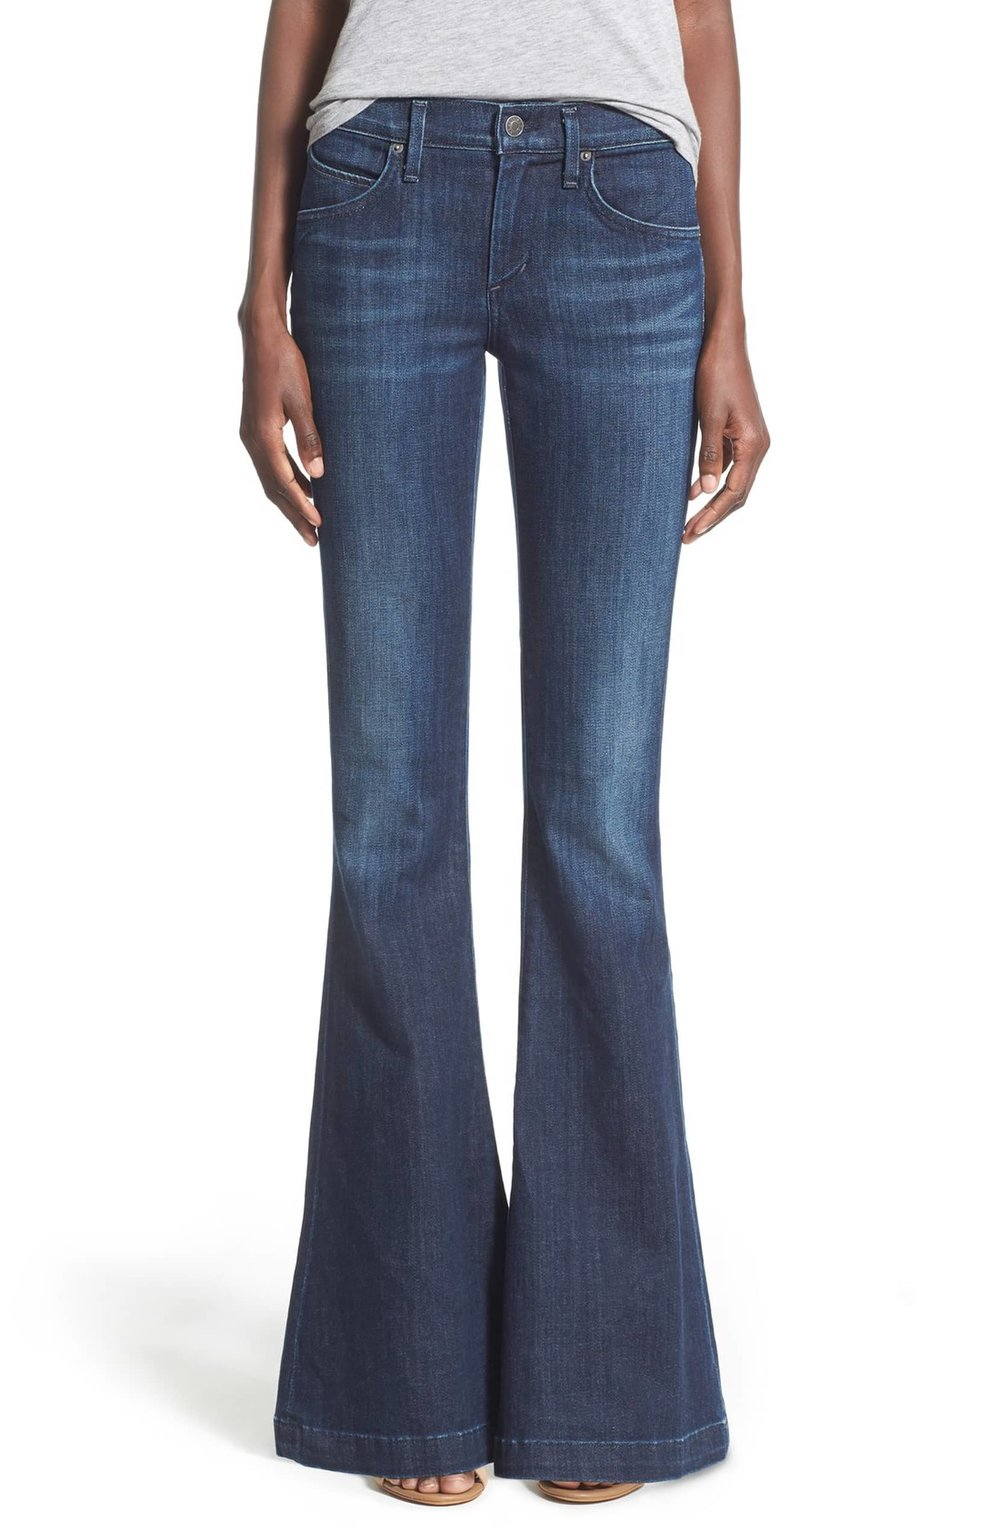 AGOLDE Madison Mid rise Flare Jeans. Nordstrom. $128.